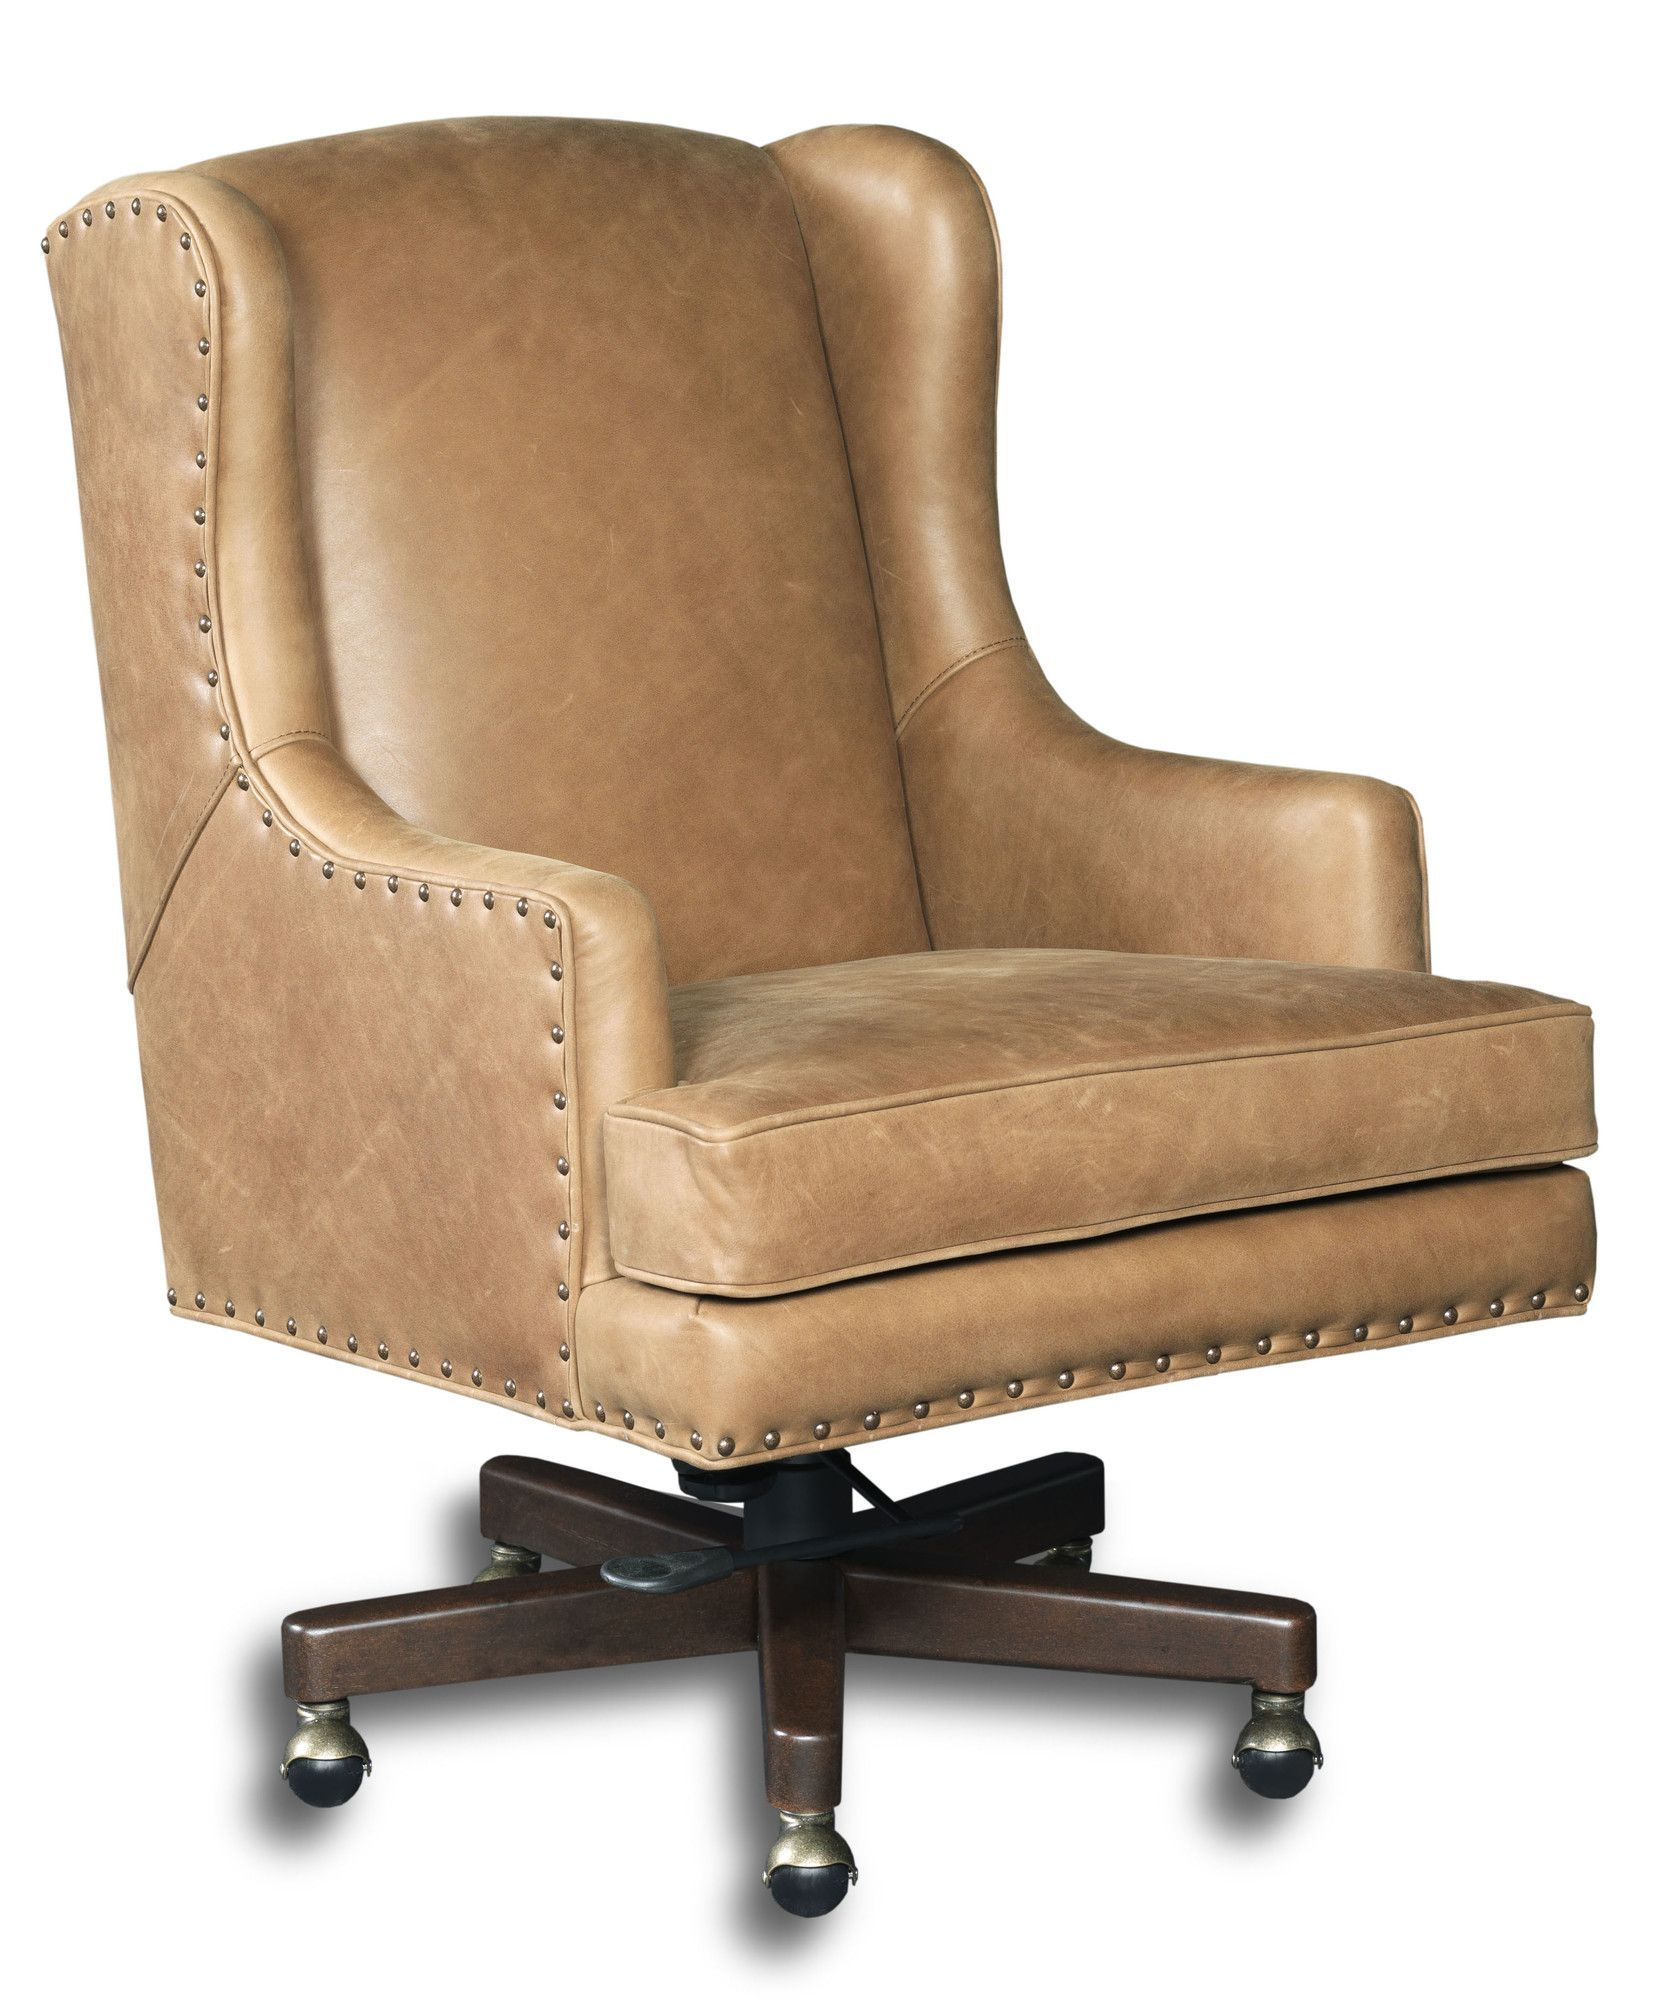 Triton High Back Leather Office Chair Furniture Home Office